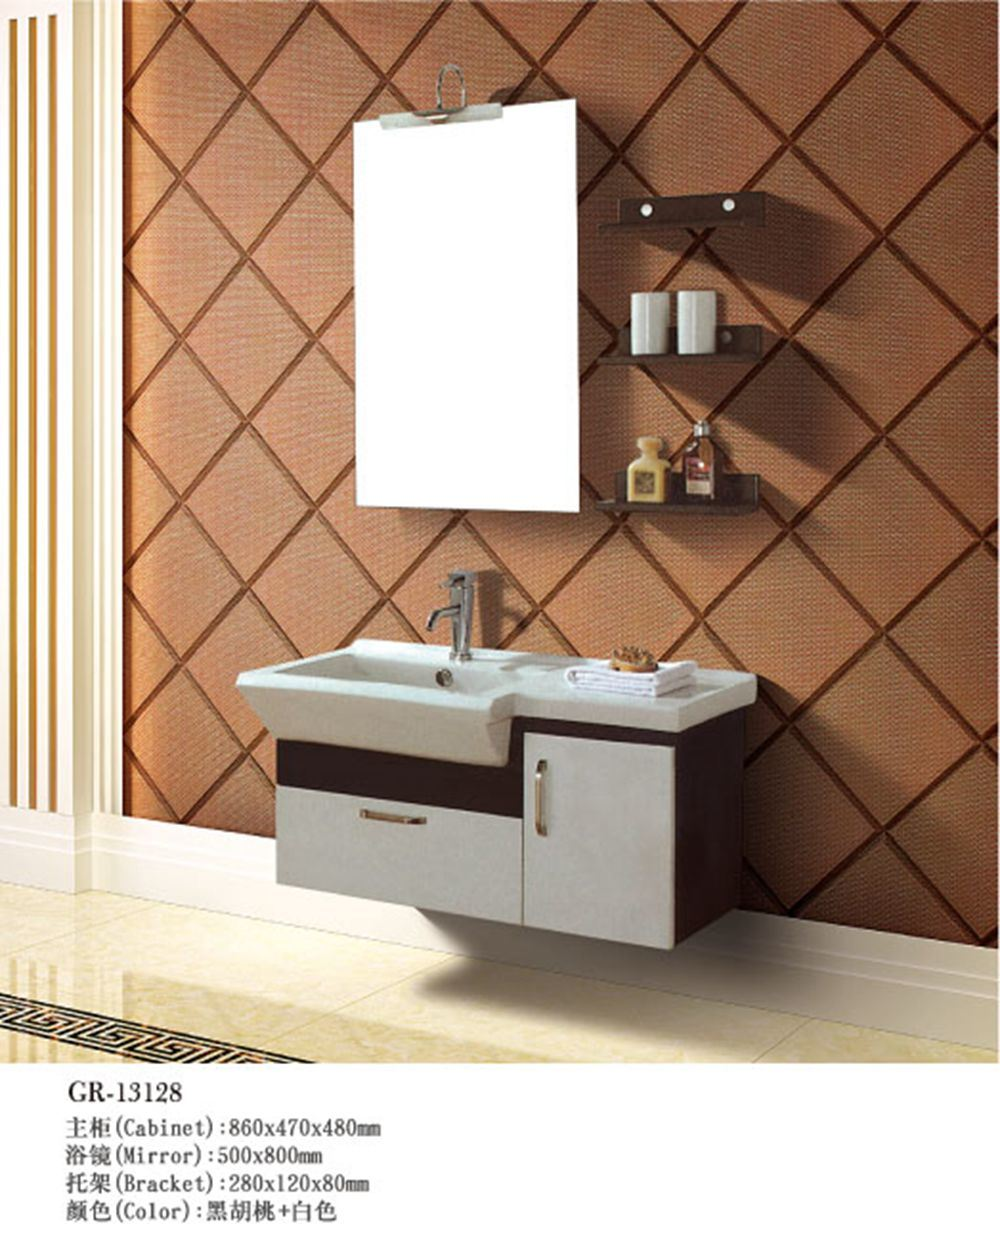 Wooden Furniture Bathroom Cabinet (13128)